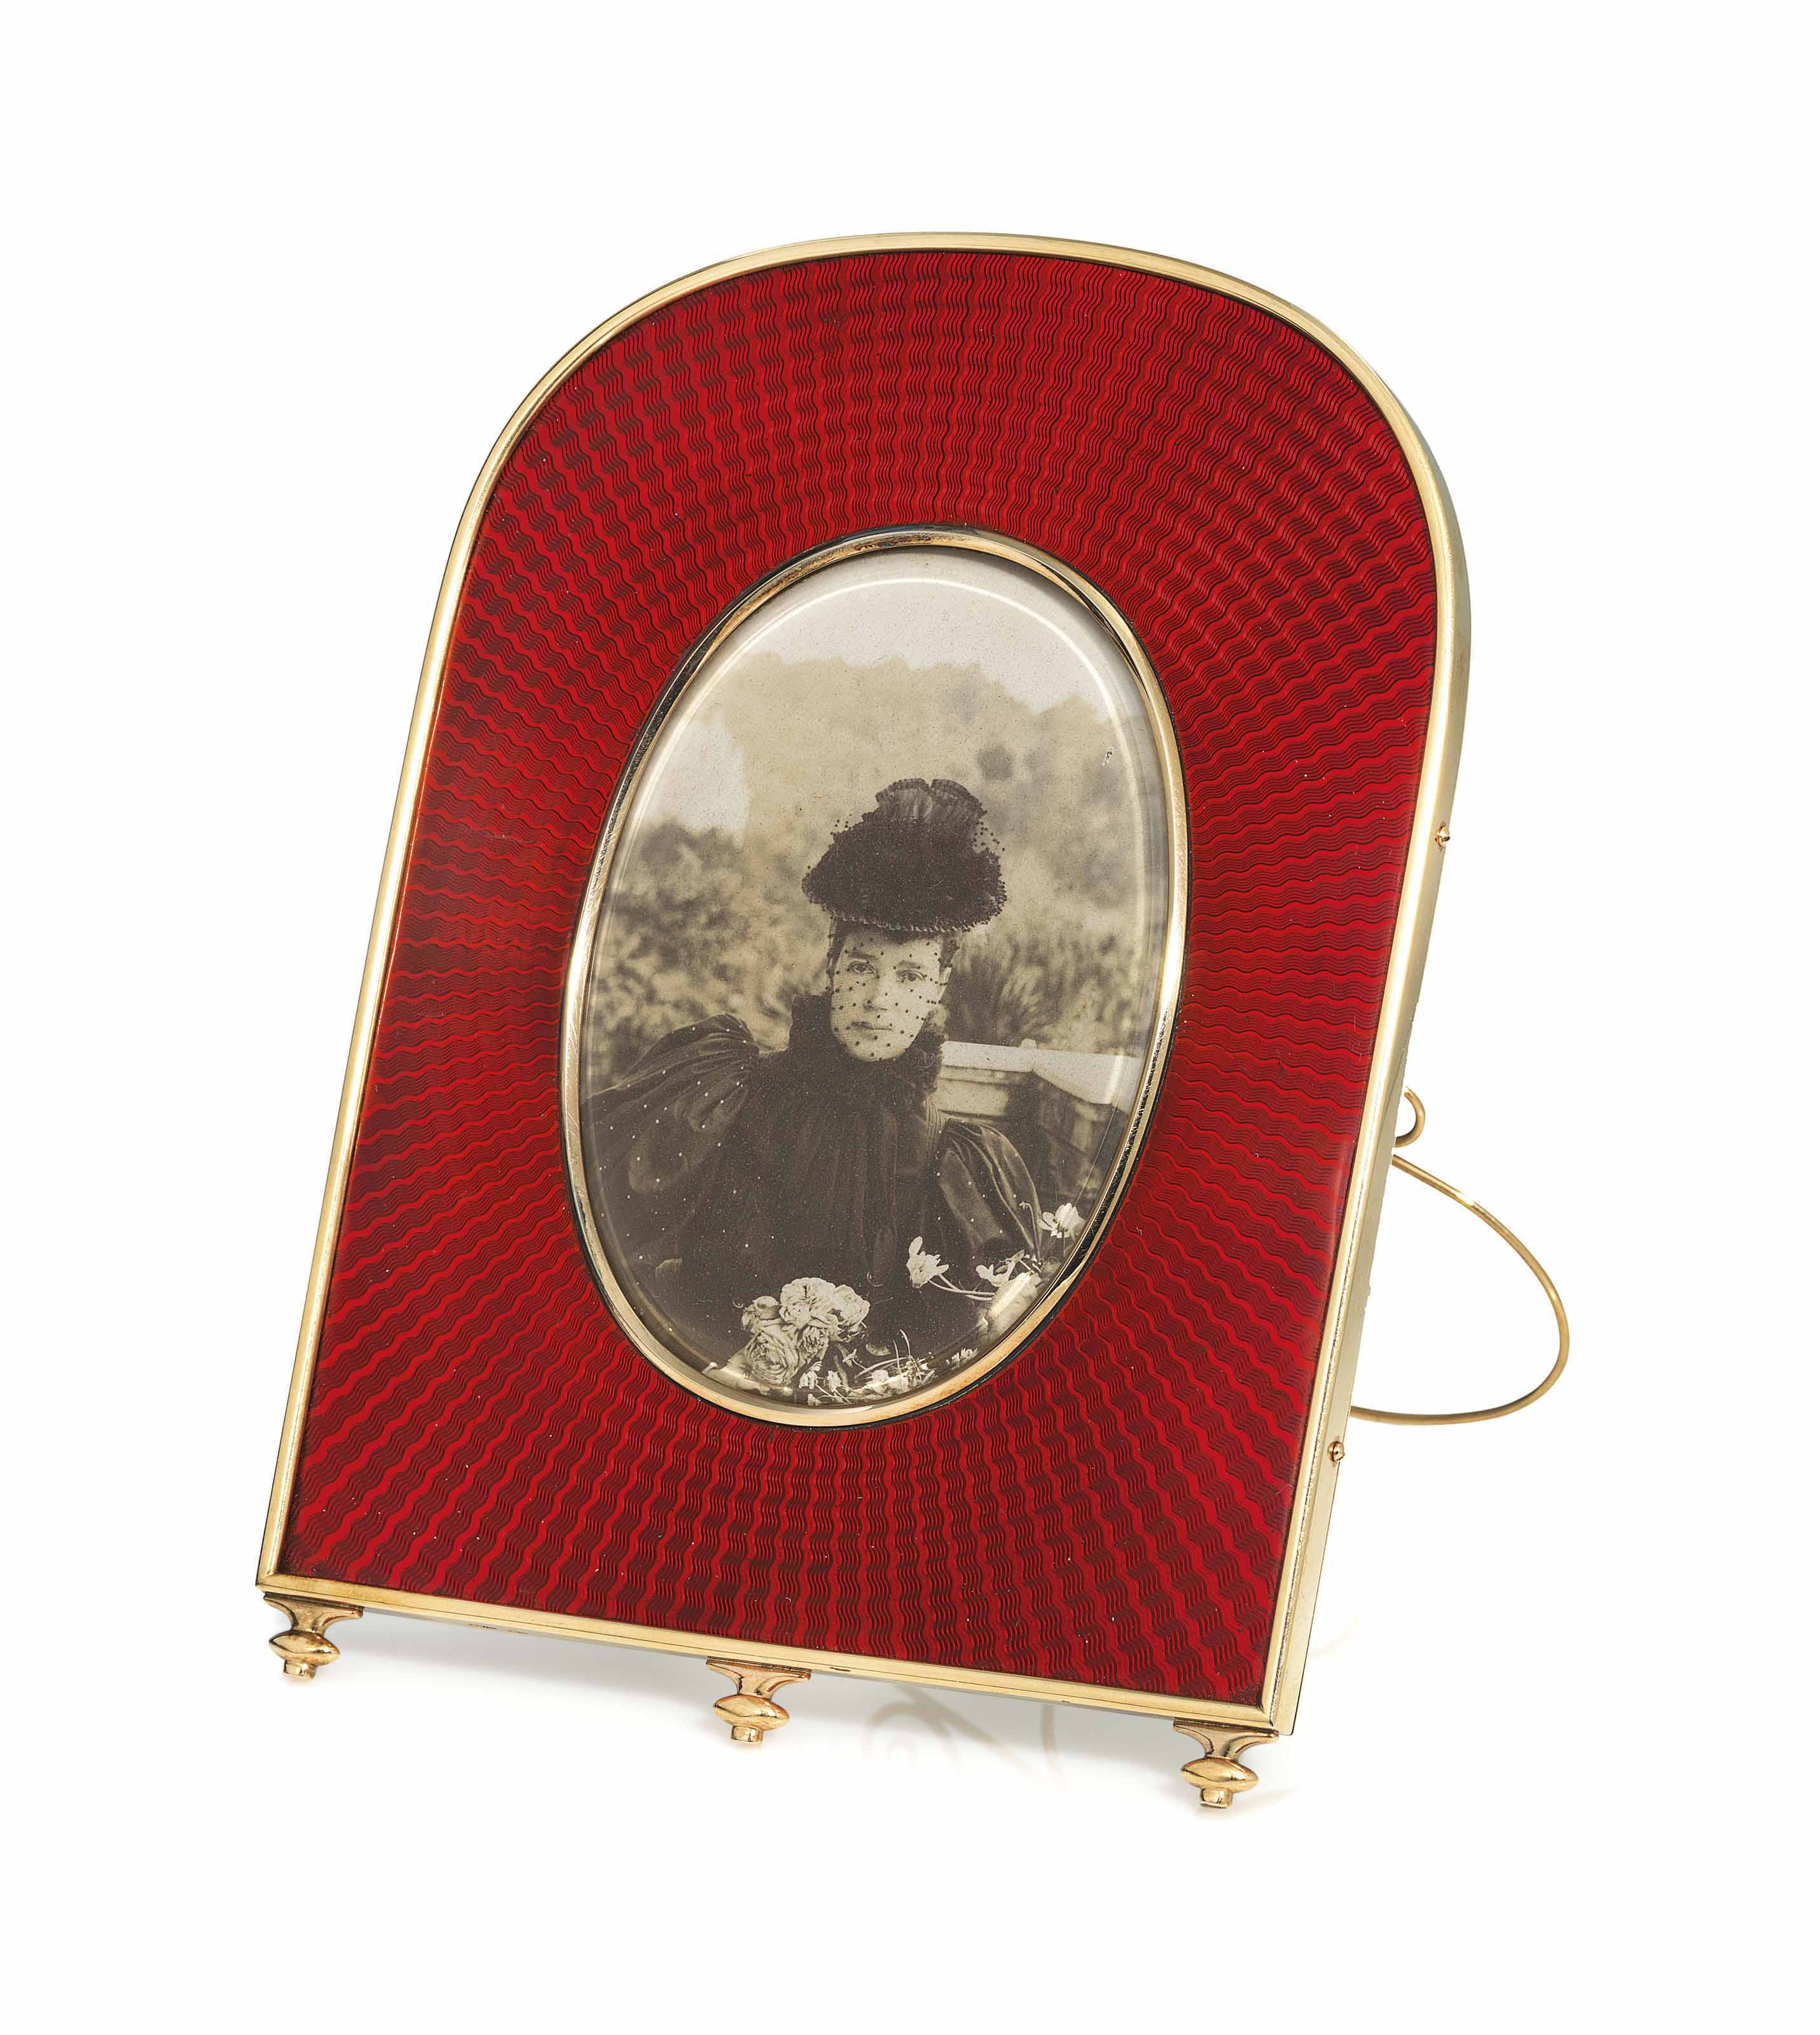 A GOLD-MOUNTED AND GUILLOCHÉ ENAMEL PHOTOGRAPH FRAME